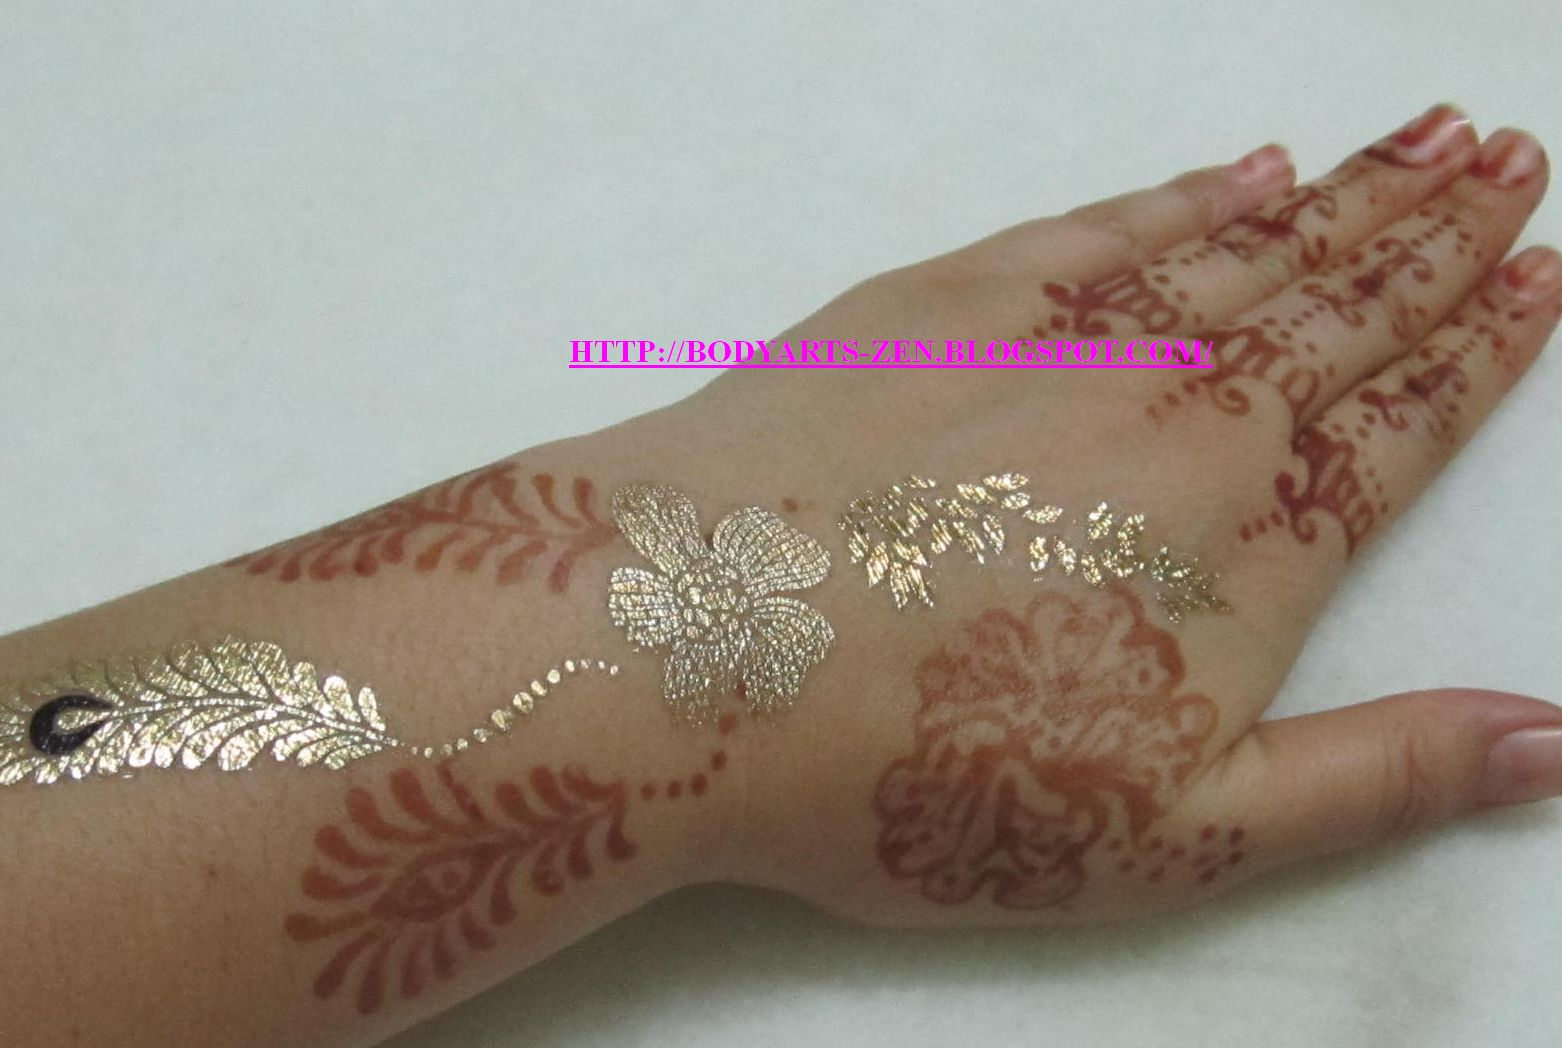 FACE PAINTING KL BODY ART HENNA TATTOO HENNA Tattoo For The